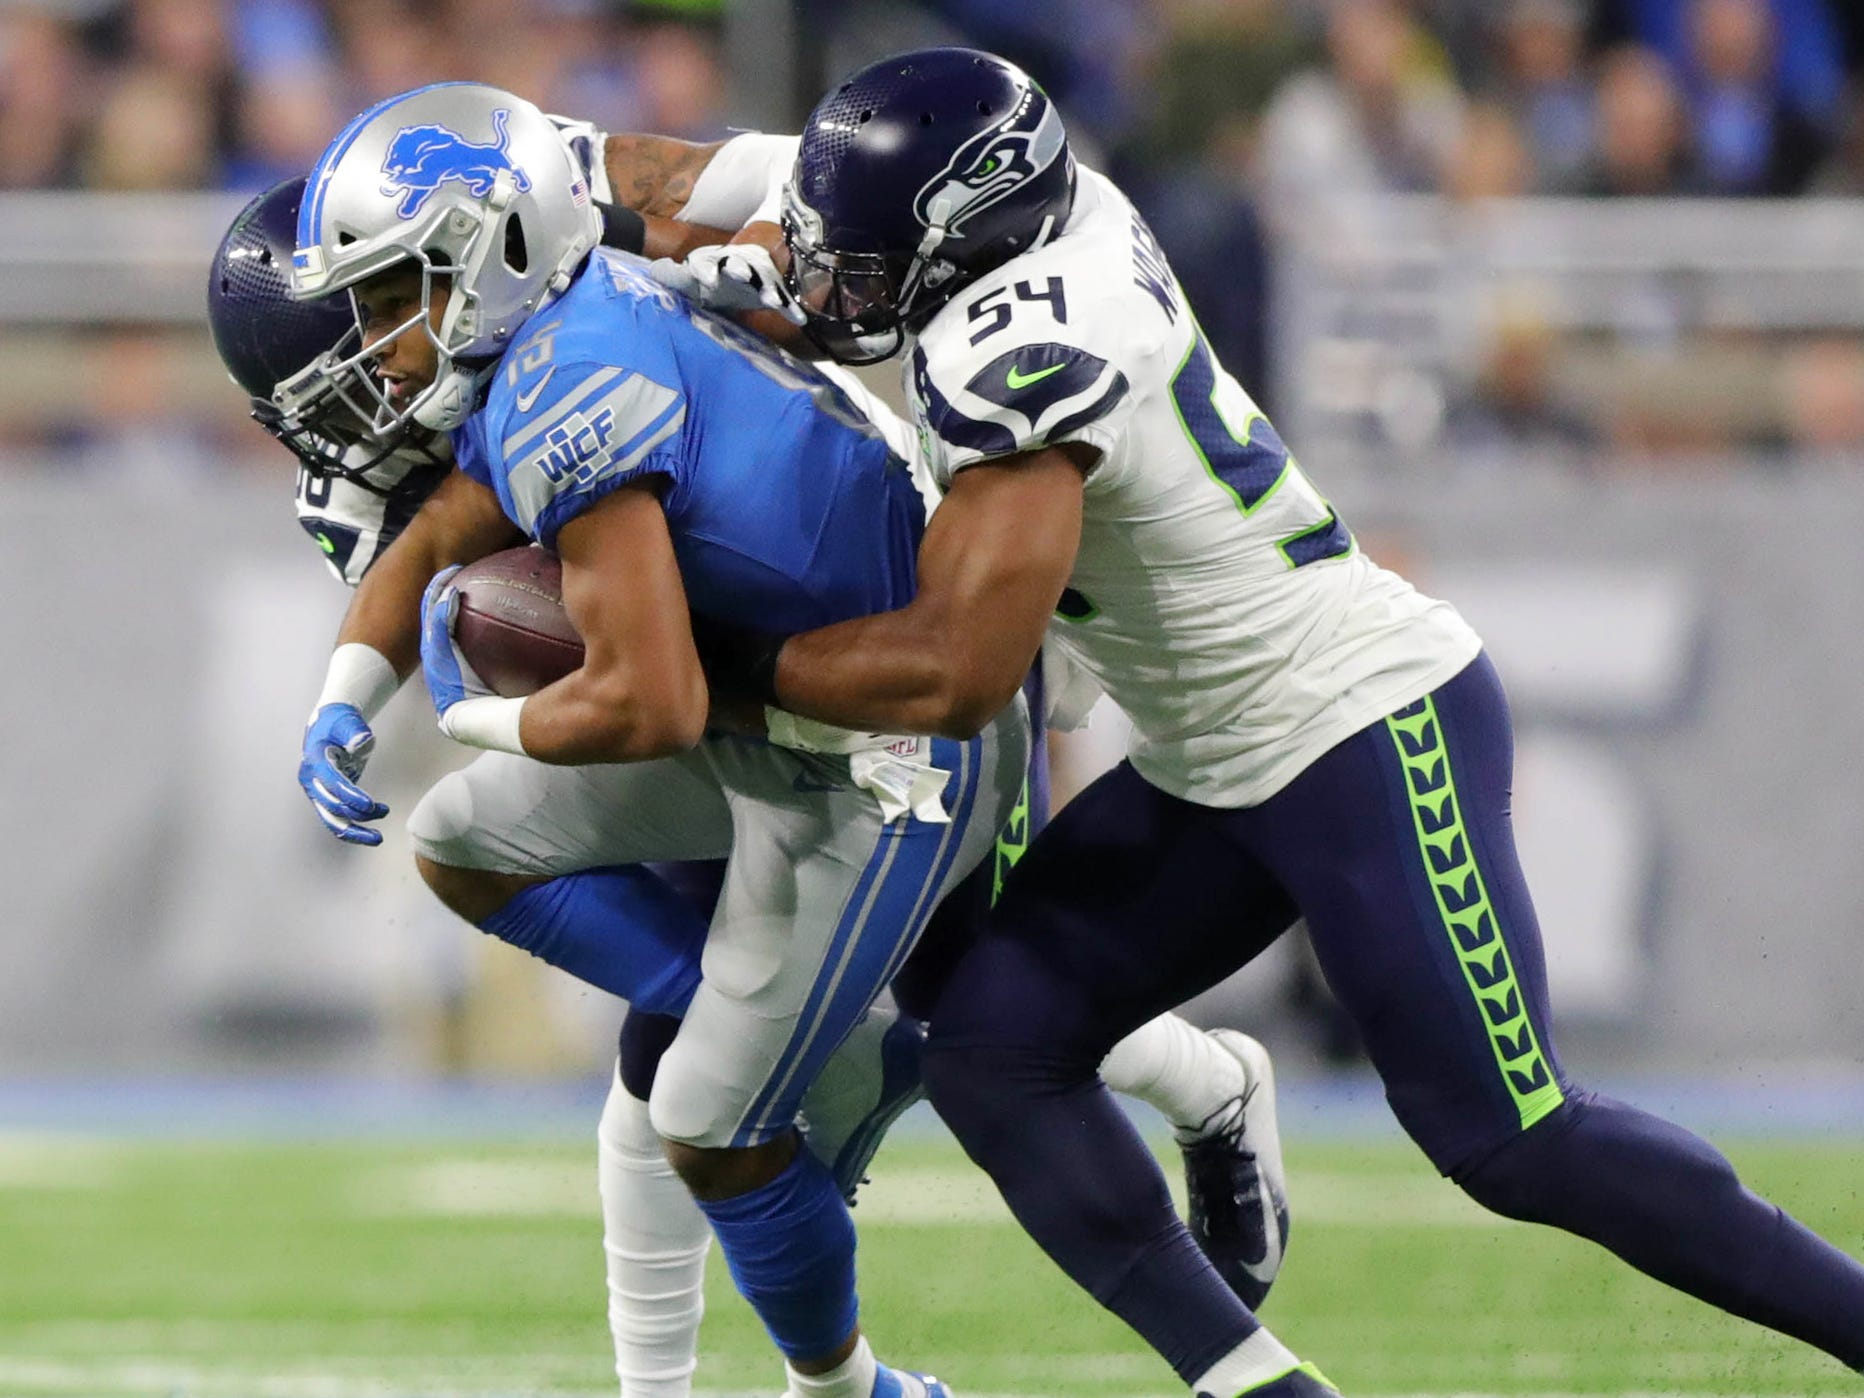 Lions receiver Golden Tate is tackled by Seahawks defenders Bradley McDougald and Bobby Wagner (54) during the first half of the Lions' 28-14 loss on Sunday, Oct. 28, 2018, at Ford Field.